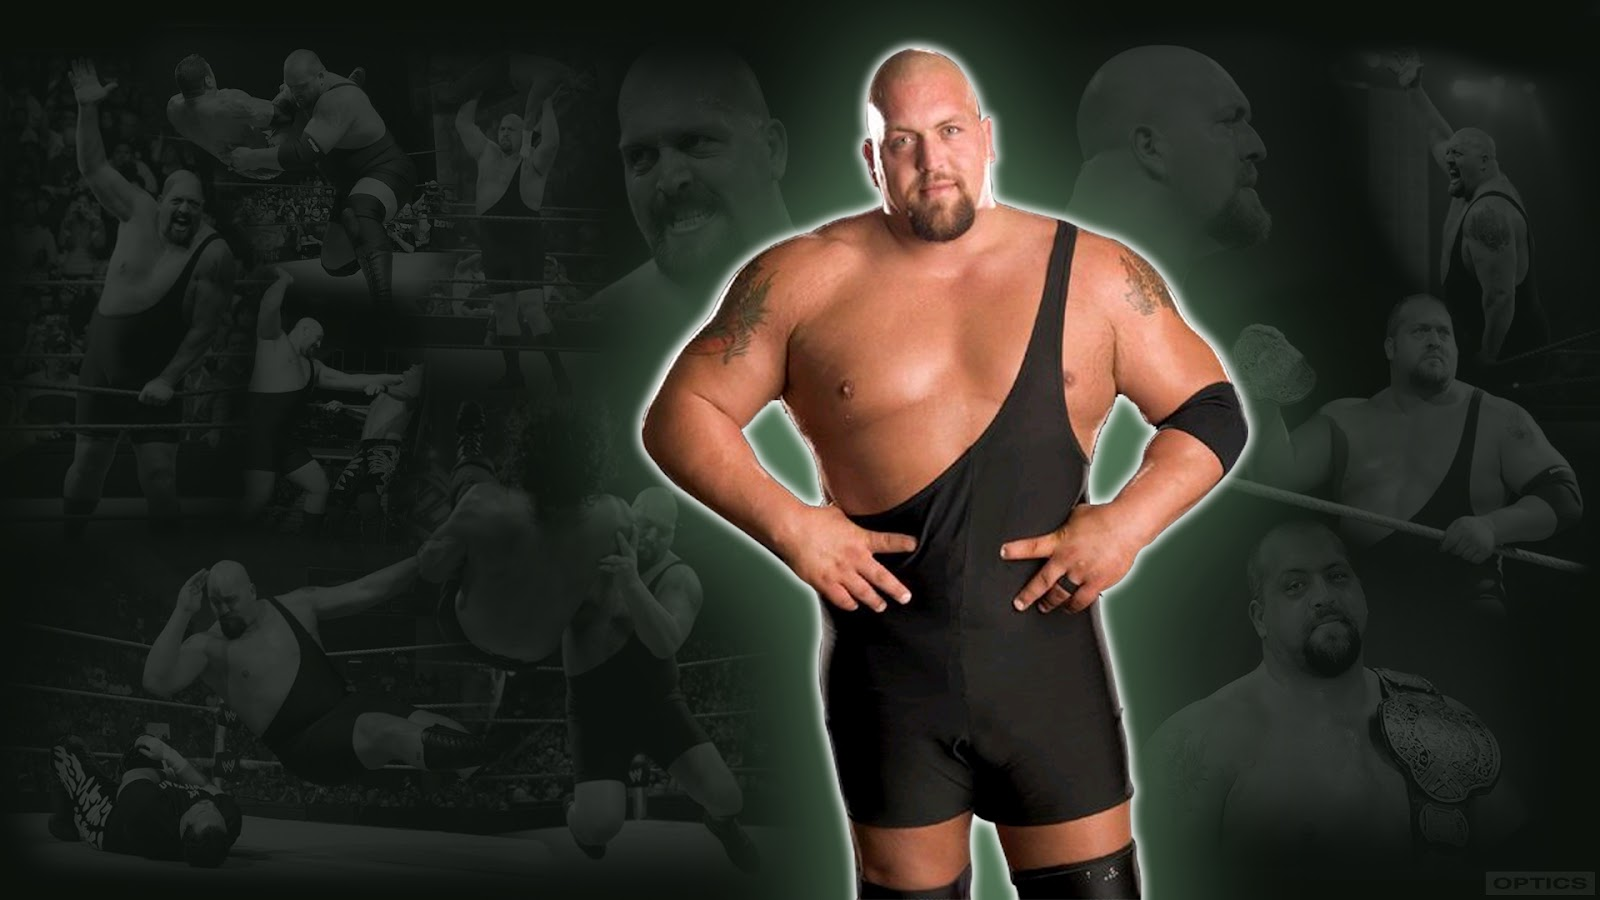 Big Show Wallpapers ~ Wrestling Stars: wrestlingstarspics.blogspot.com/2012/07/big-show-wallpapers.html